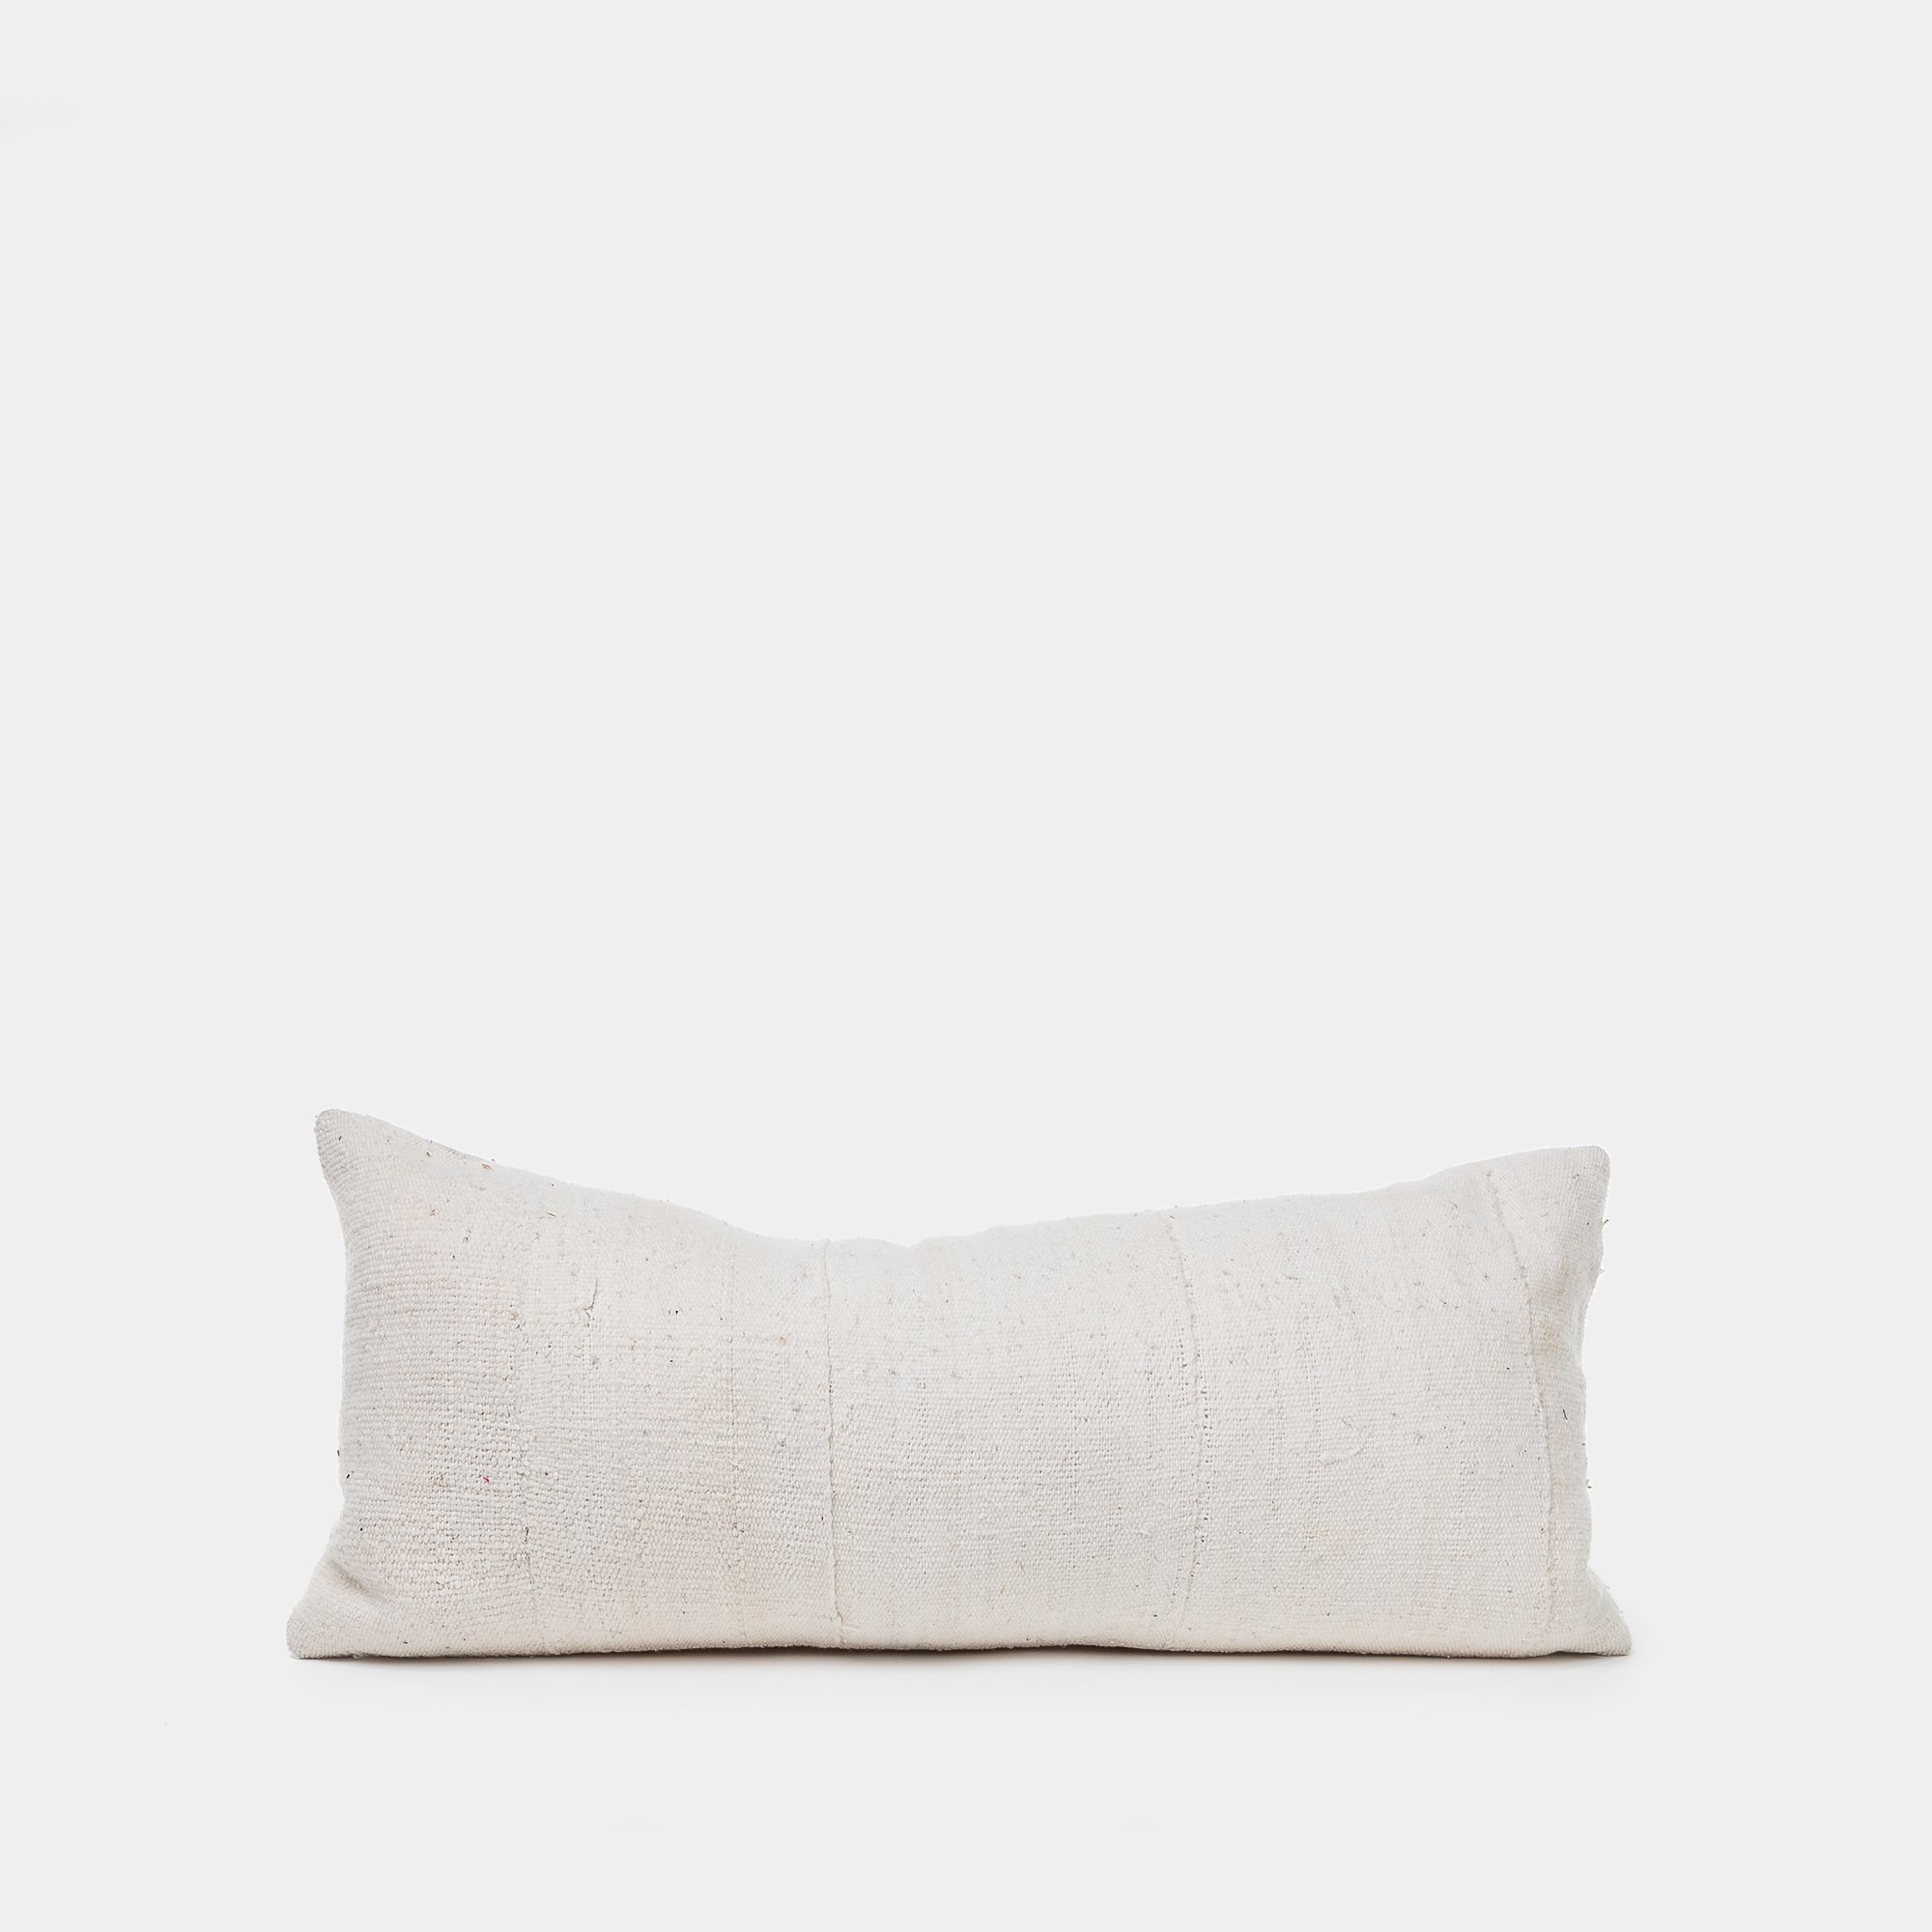 ALL-SORTS-OF-SHOPPE-PILLOW